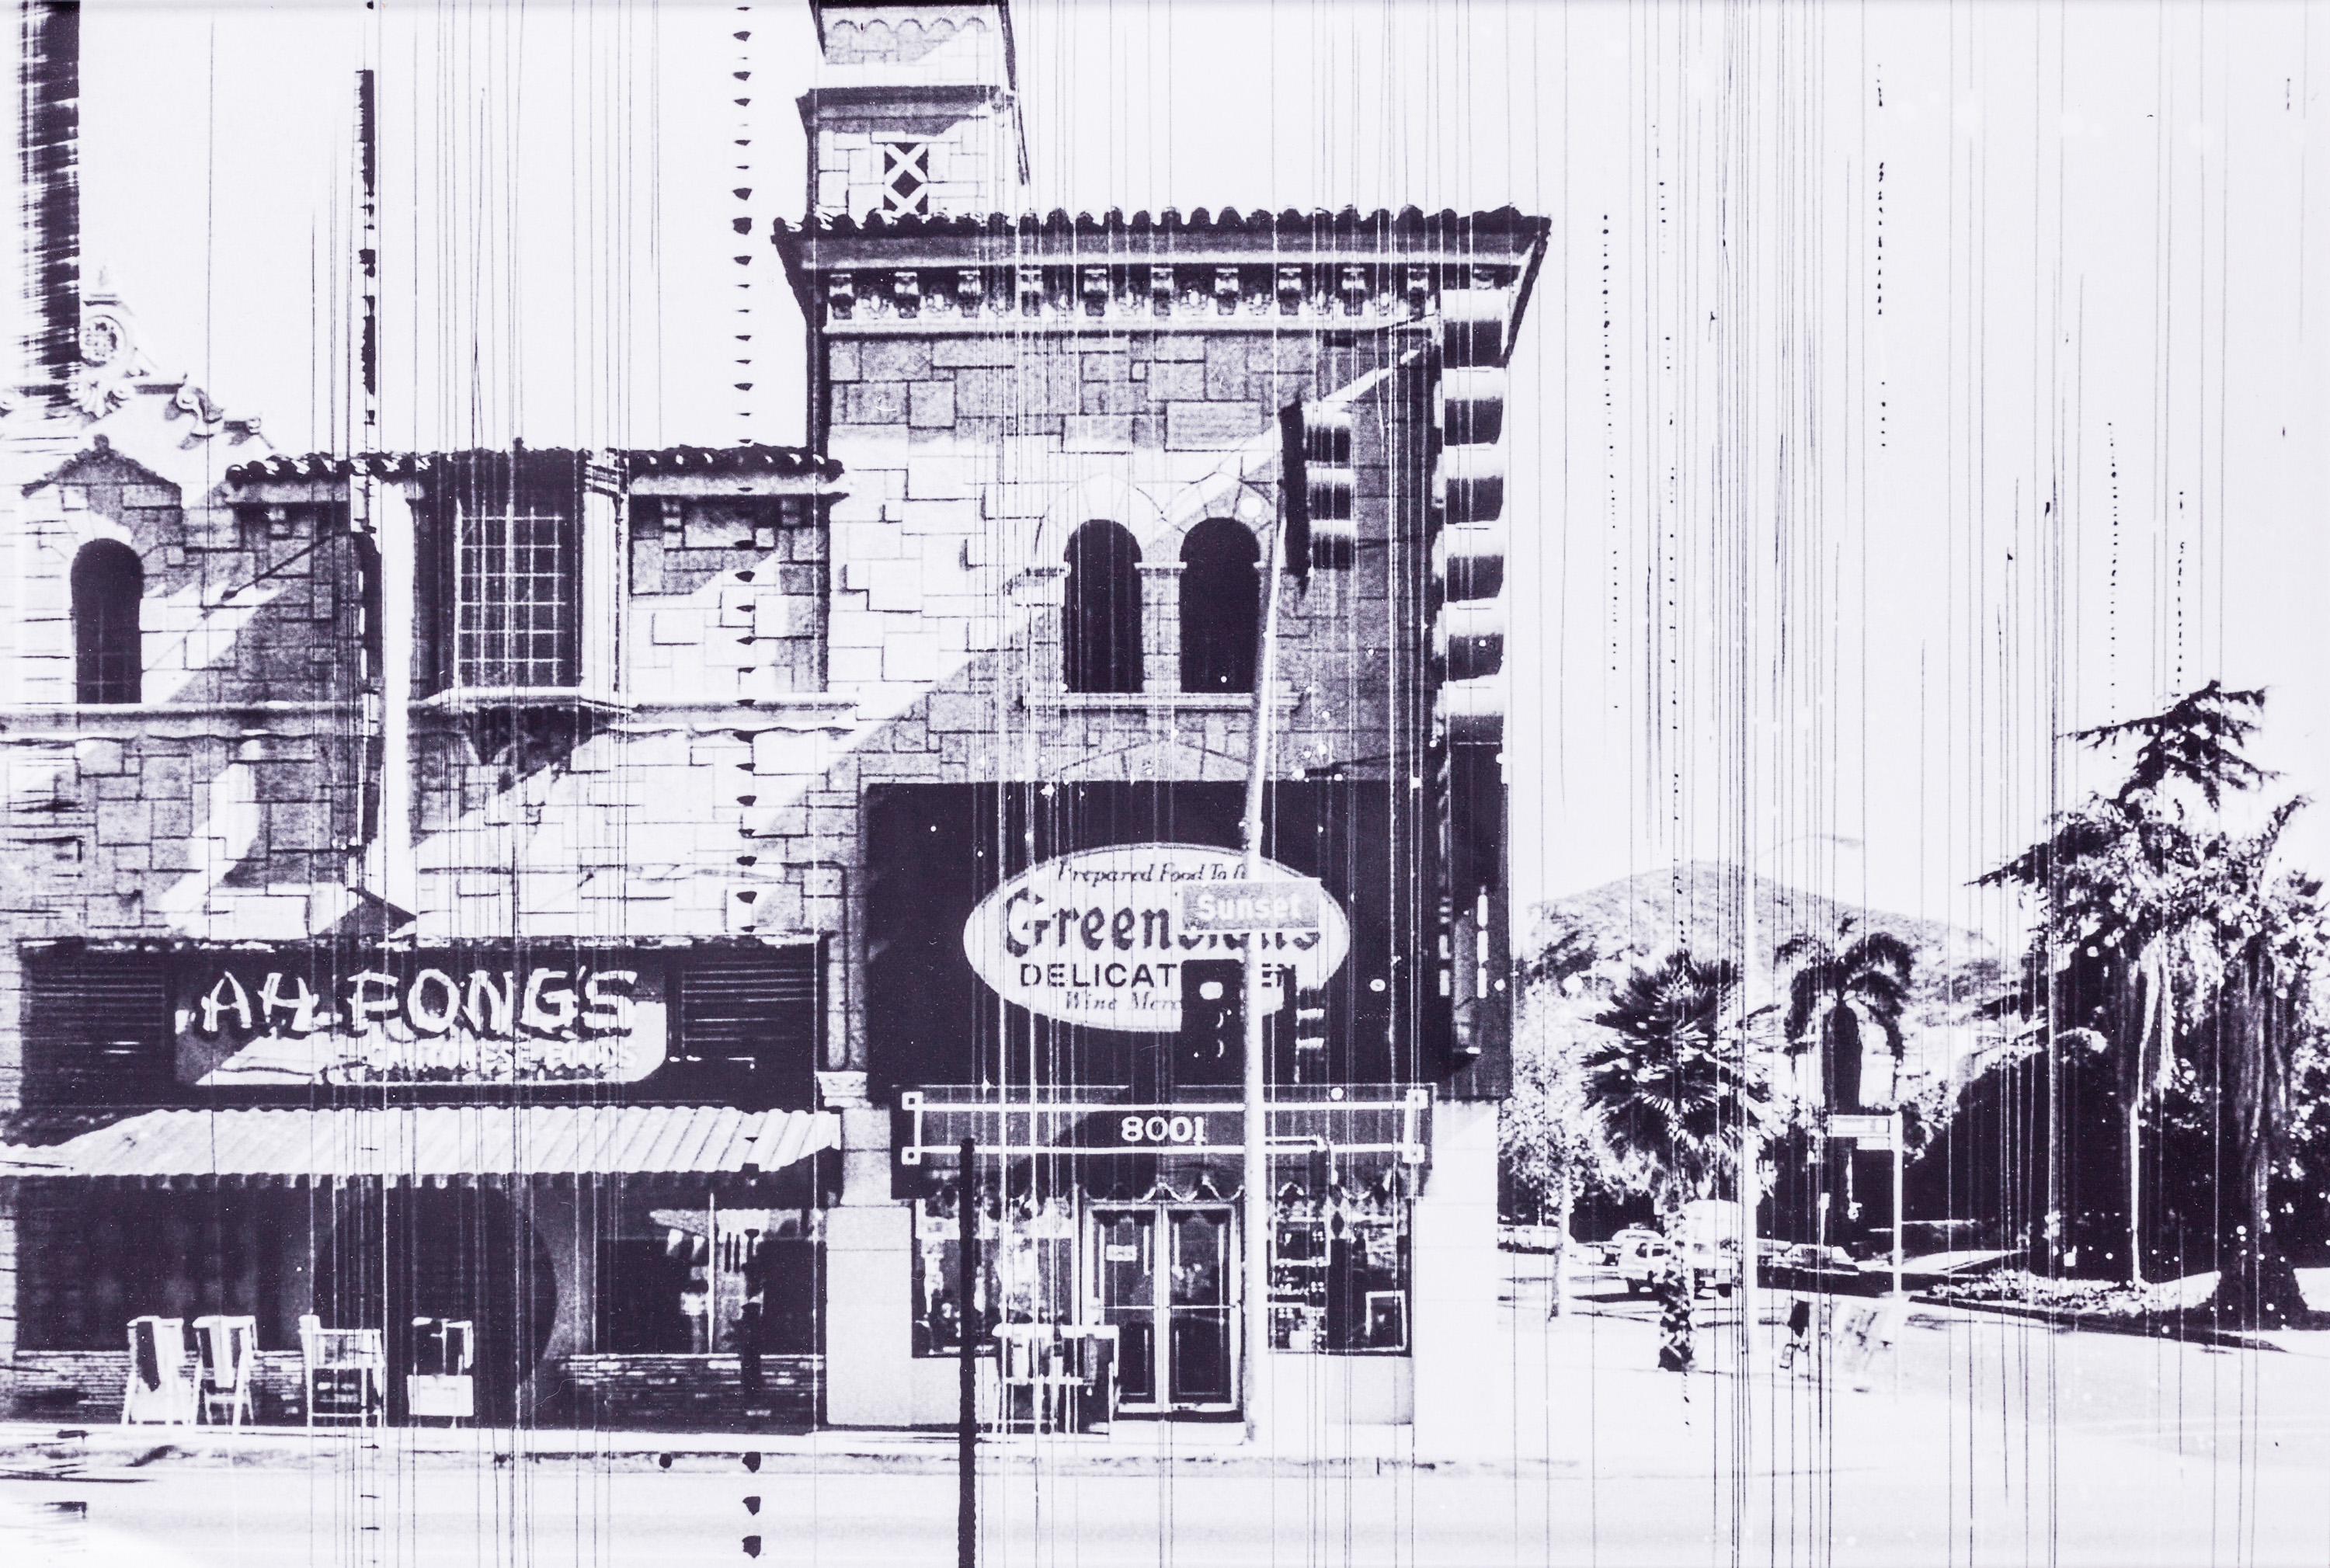 Ed Ruscha, Greenblatt's Deli (The Sunset Strip, LA - Portfolio)